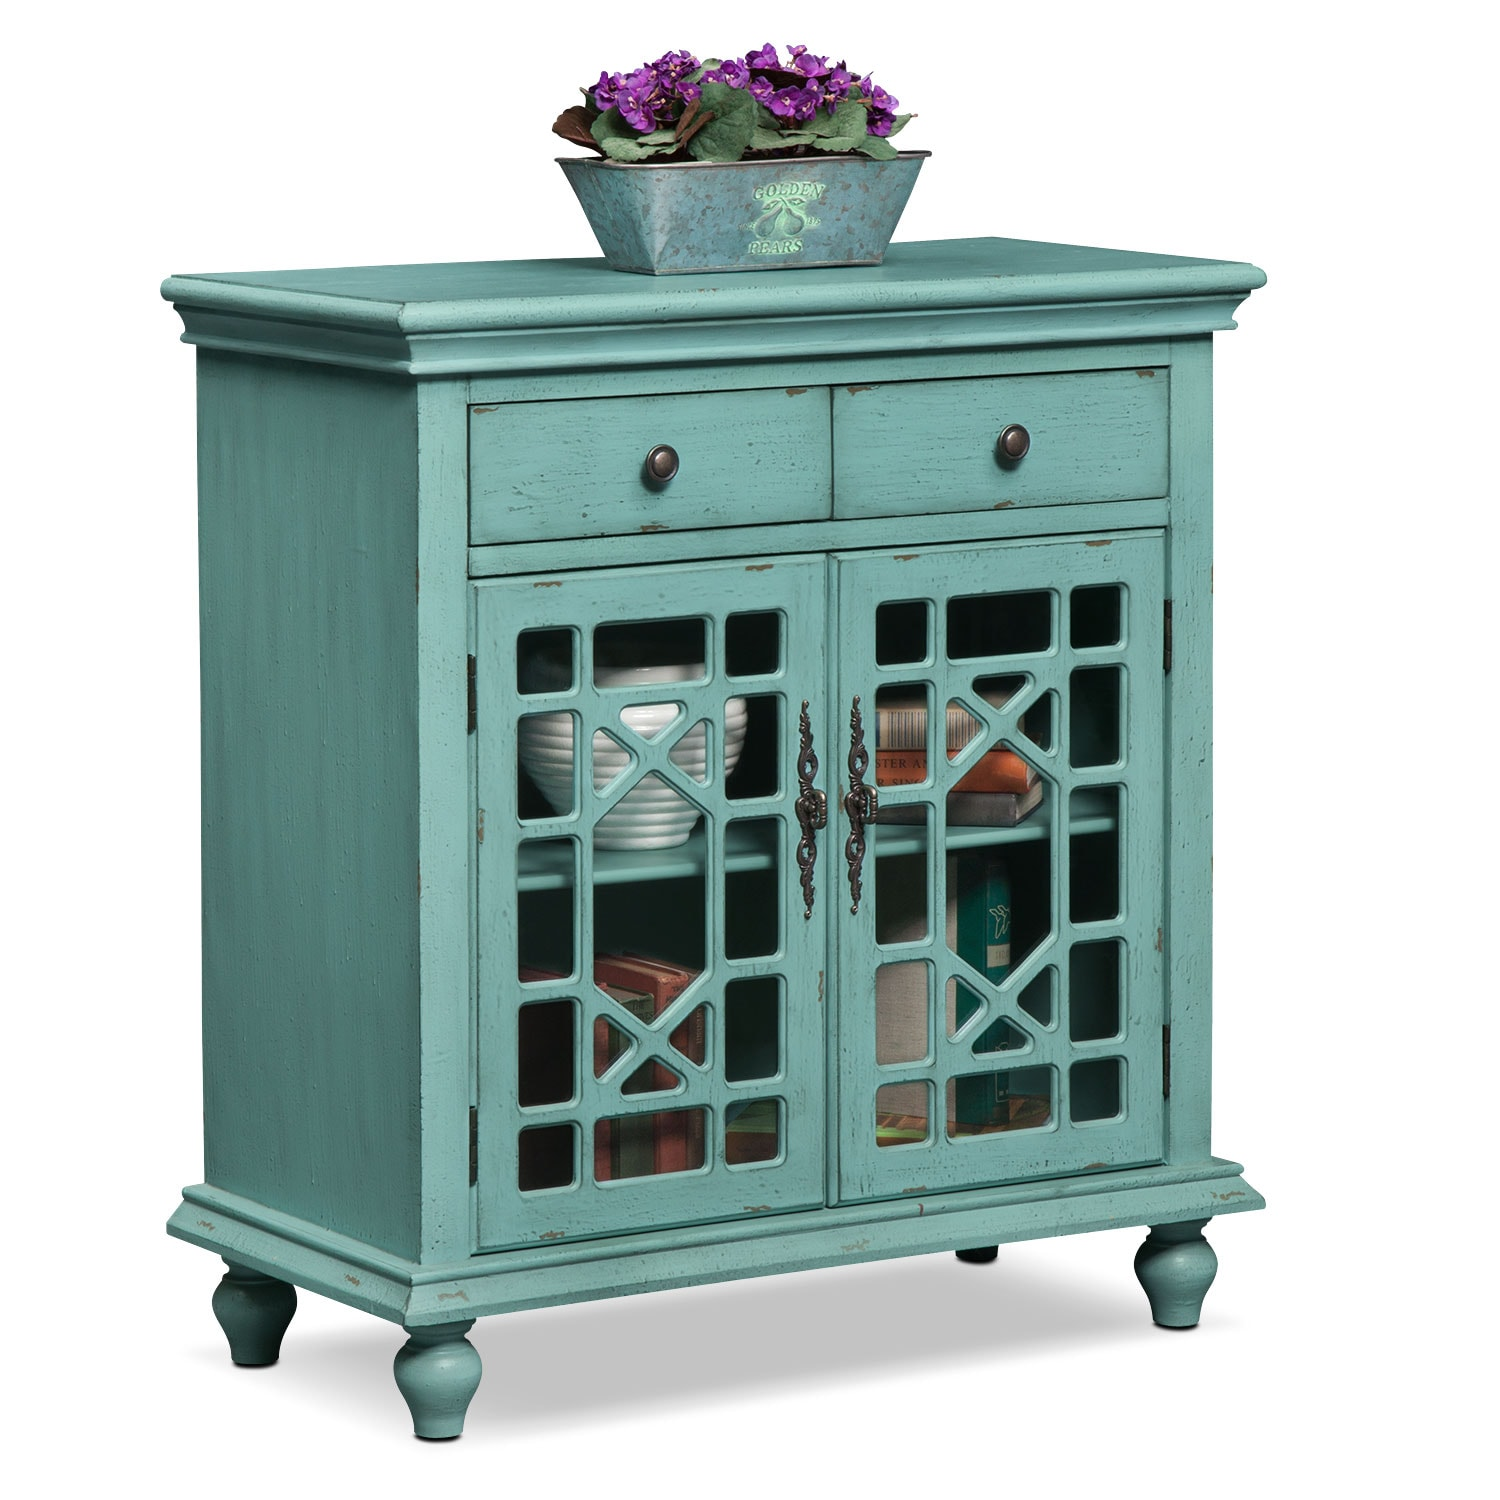 American Accents Furniture Nc: Grenoble Accent Cabinet - Teal